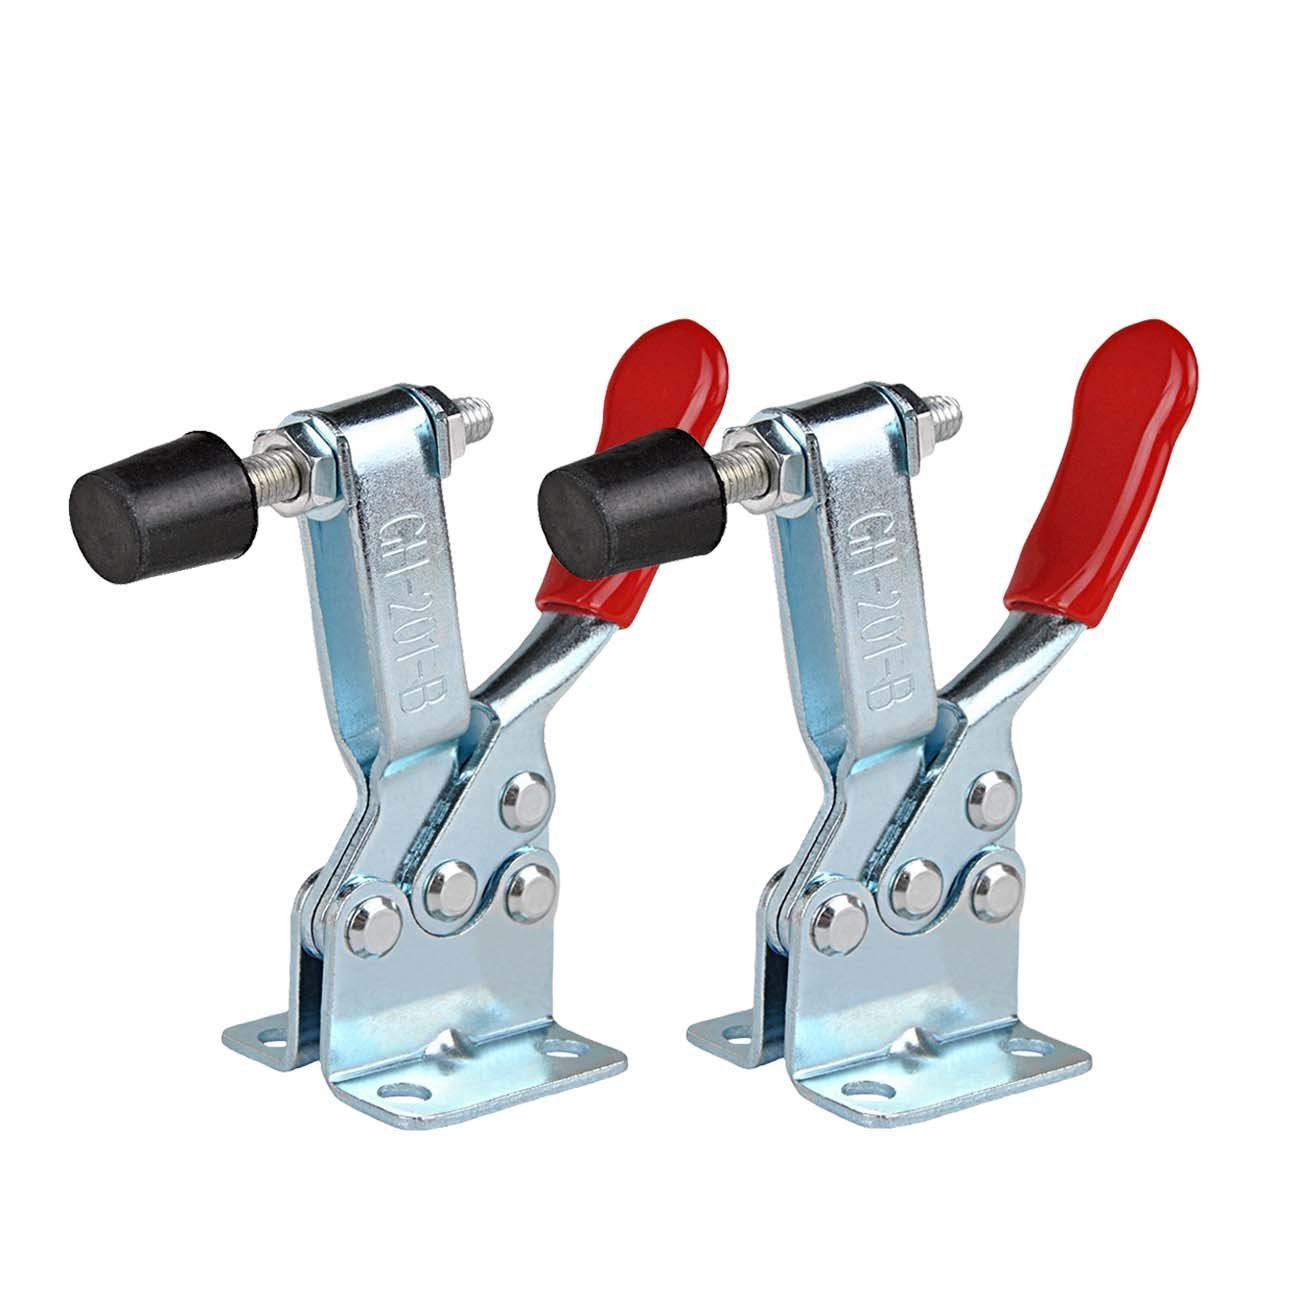 Saim Toggle Clamp Holding Capacity Vertical Quick Release Hand Tool Hold-Down Clamp (2Pcs, 201B 90Kg 198 Lbs) LS17032300132